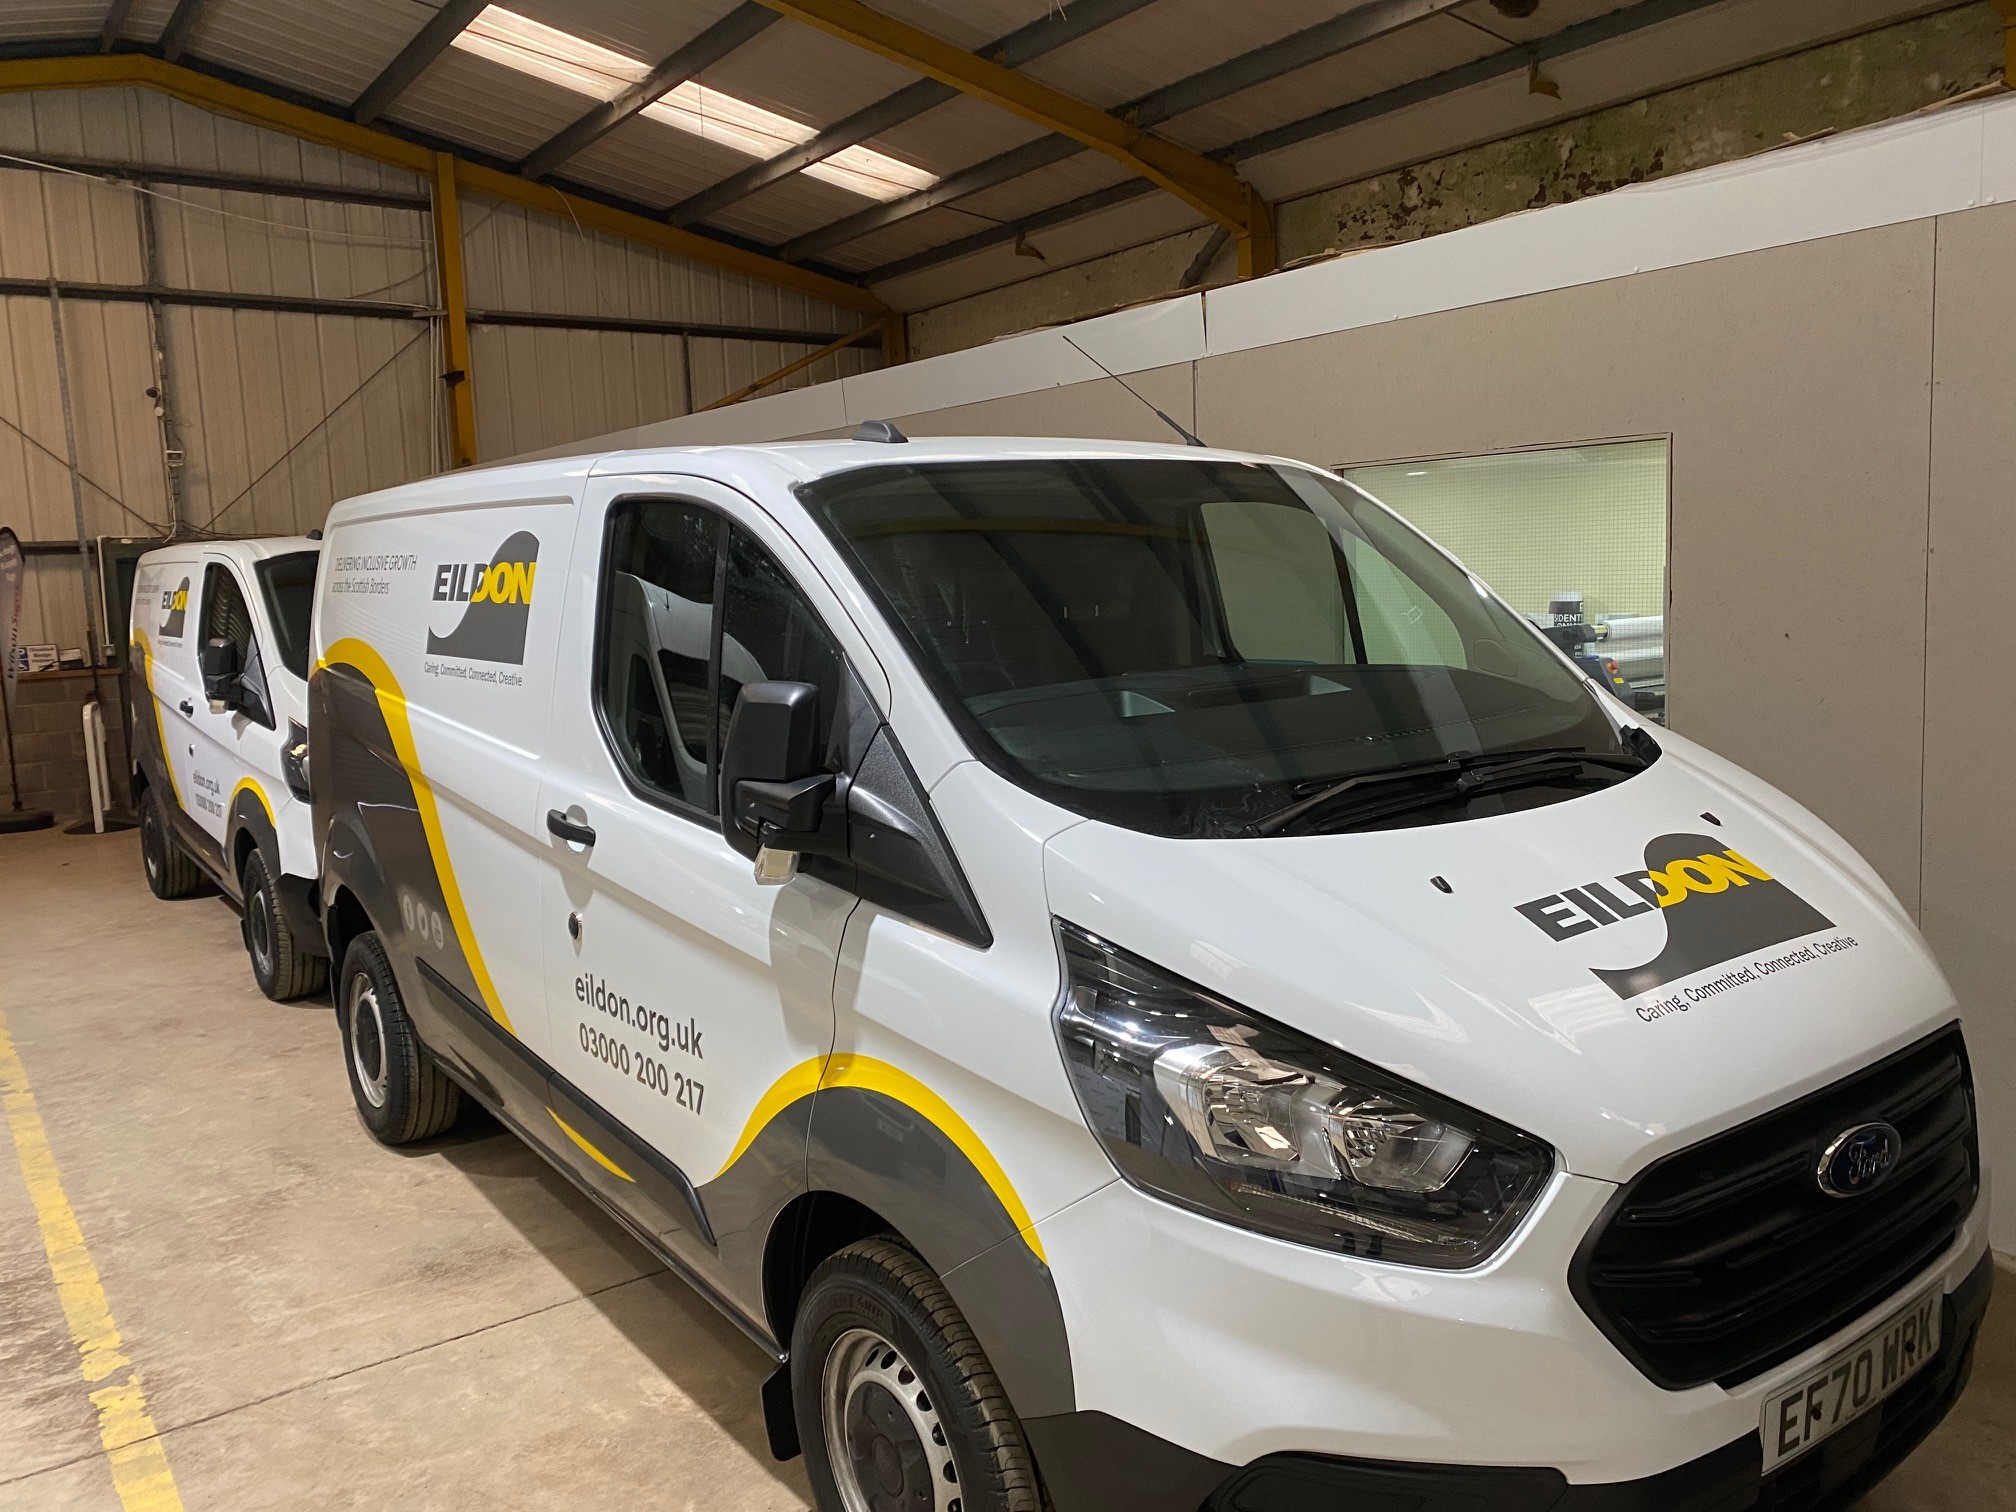 Looking good – our vans have been wrapped in fresh clean signage today and are ready for the road